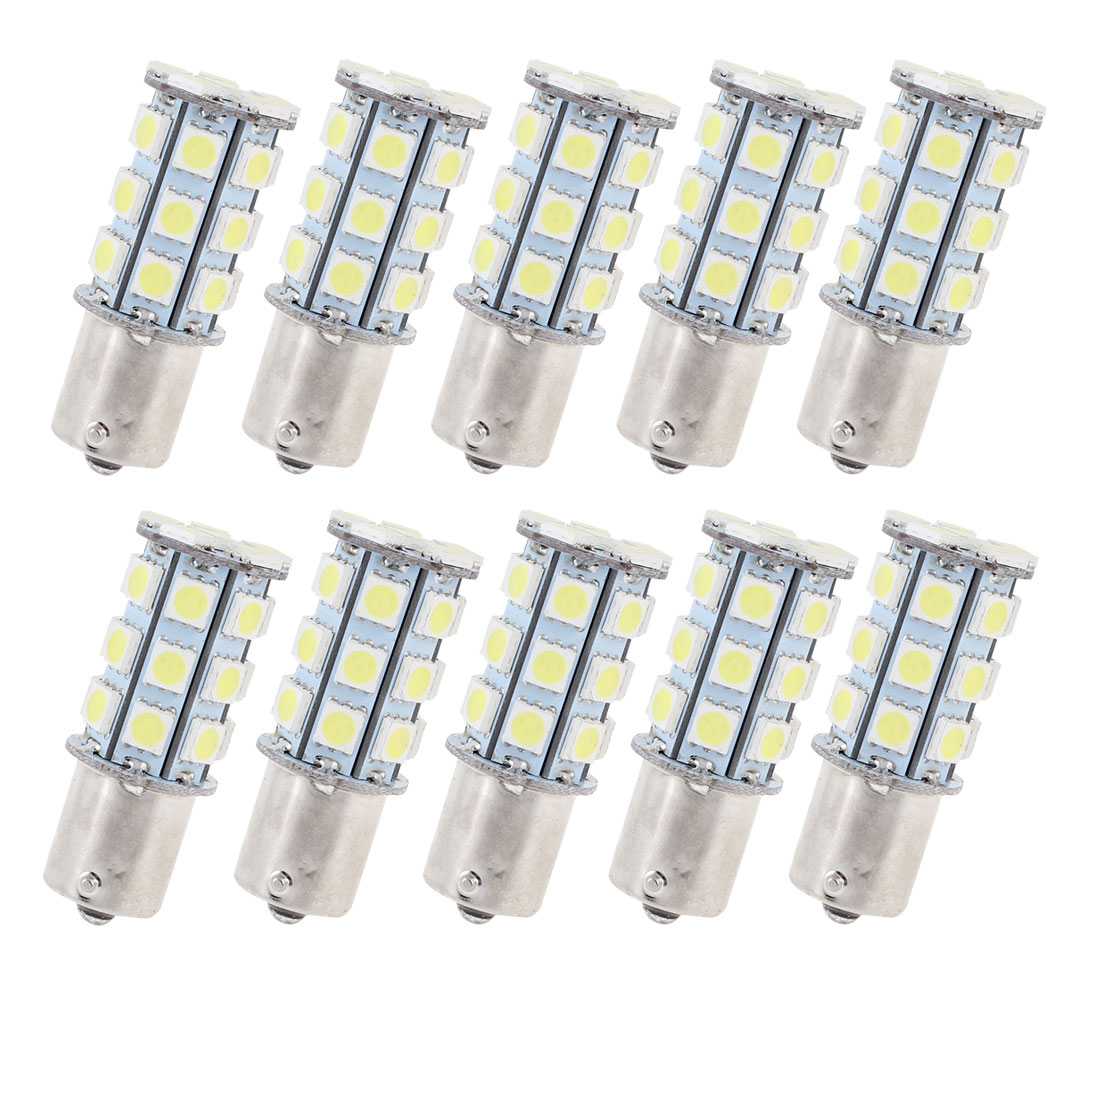 10 Pcs White 27 LED 1156 BA15S 5050 SMD Car Indicator Backup Tail Turn Light 1073 1093 1129